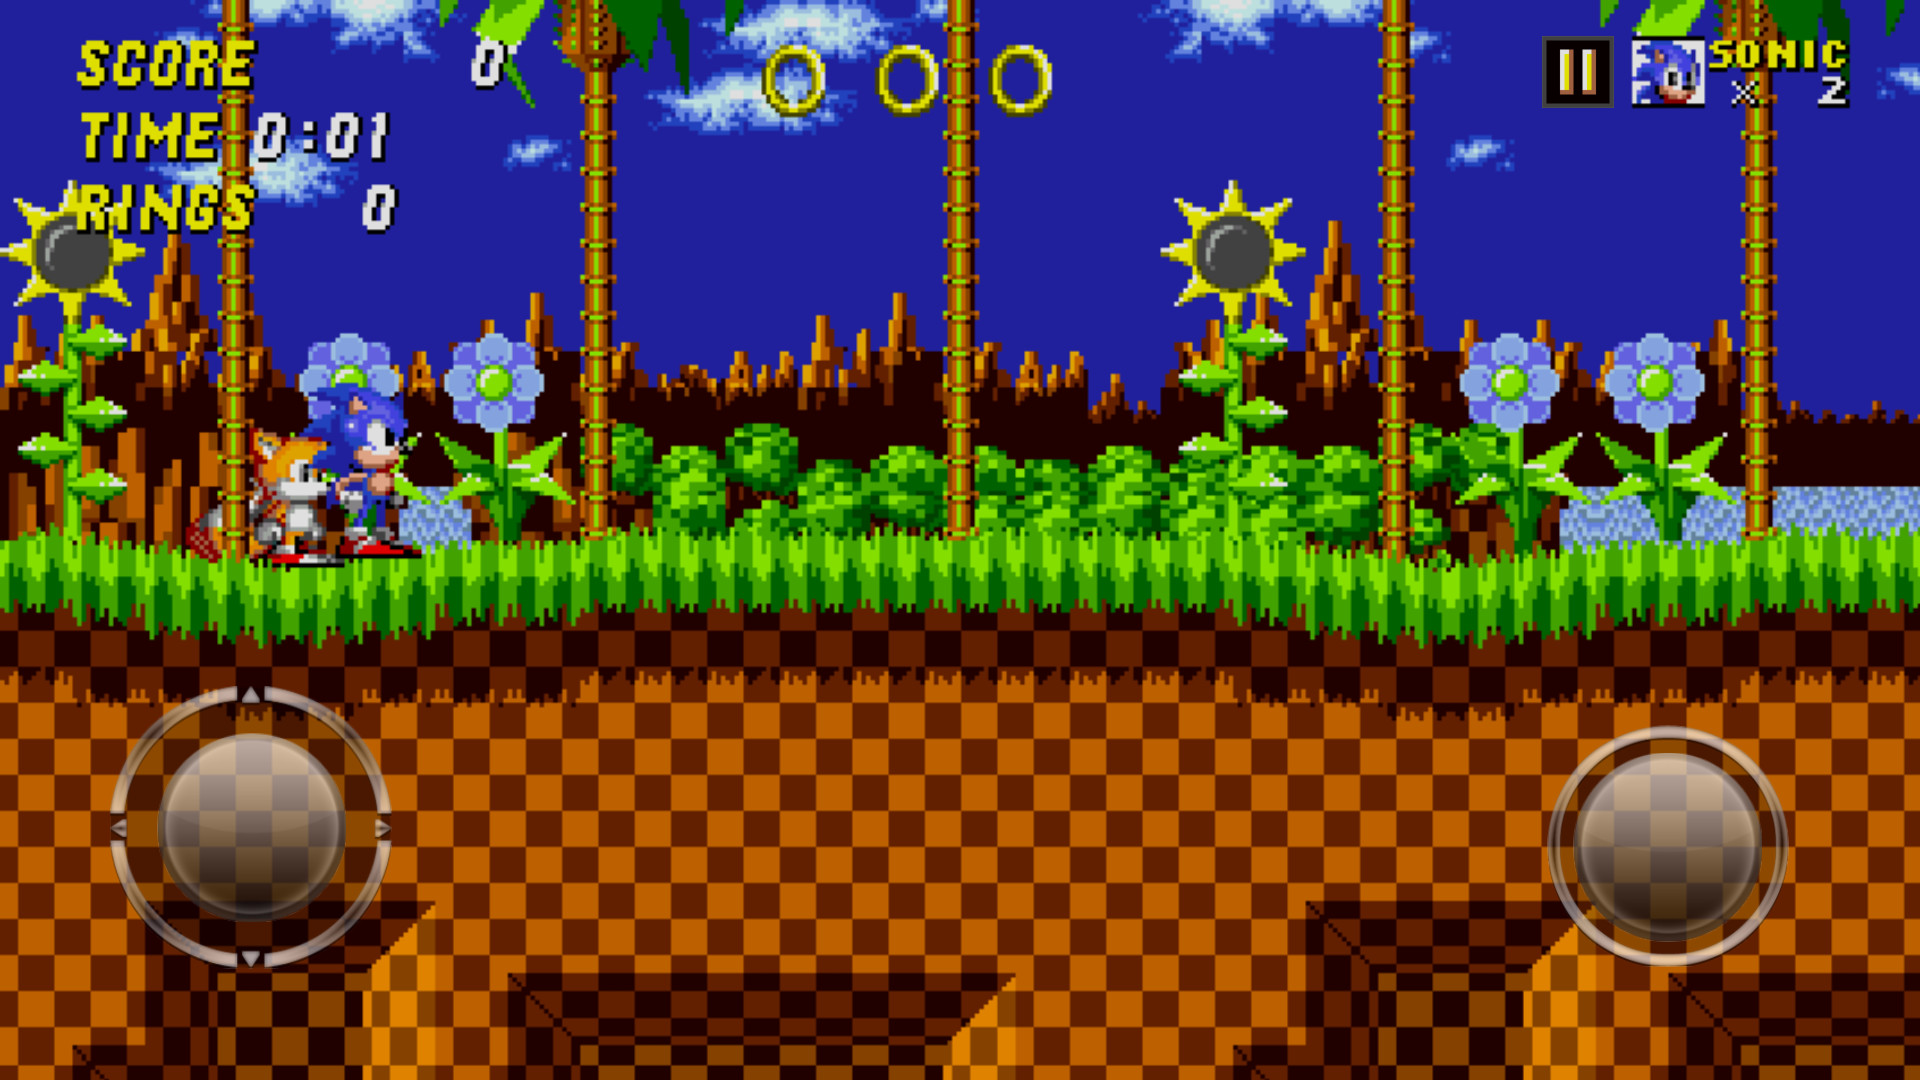 Sonic the hedgehog 2 apk no ads | Download Sonic The